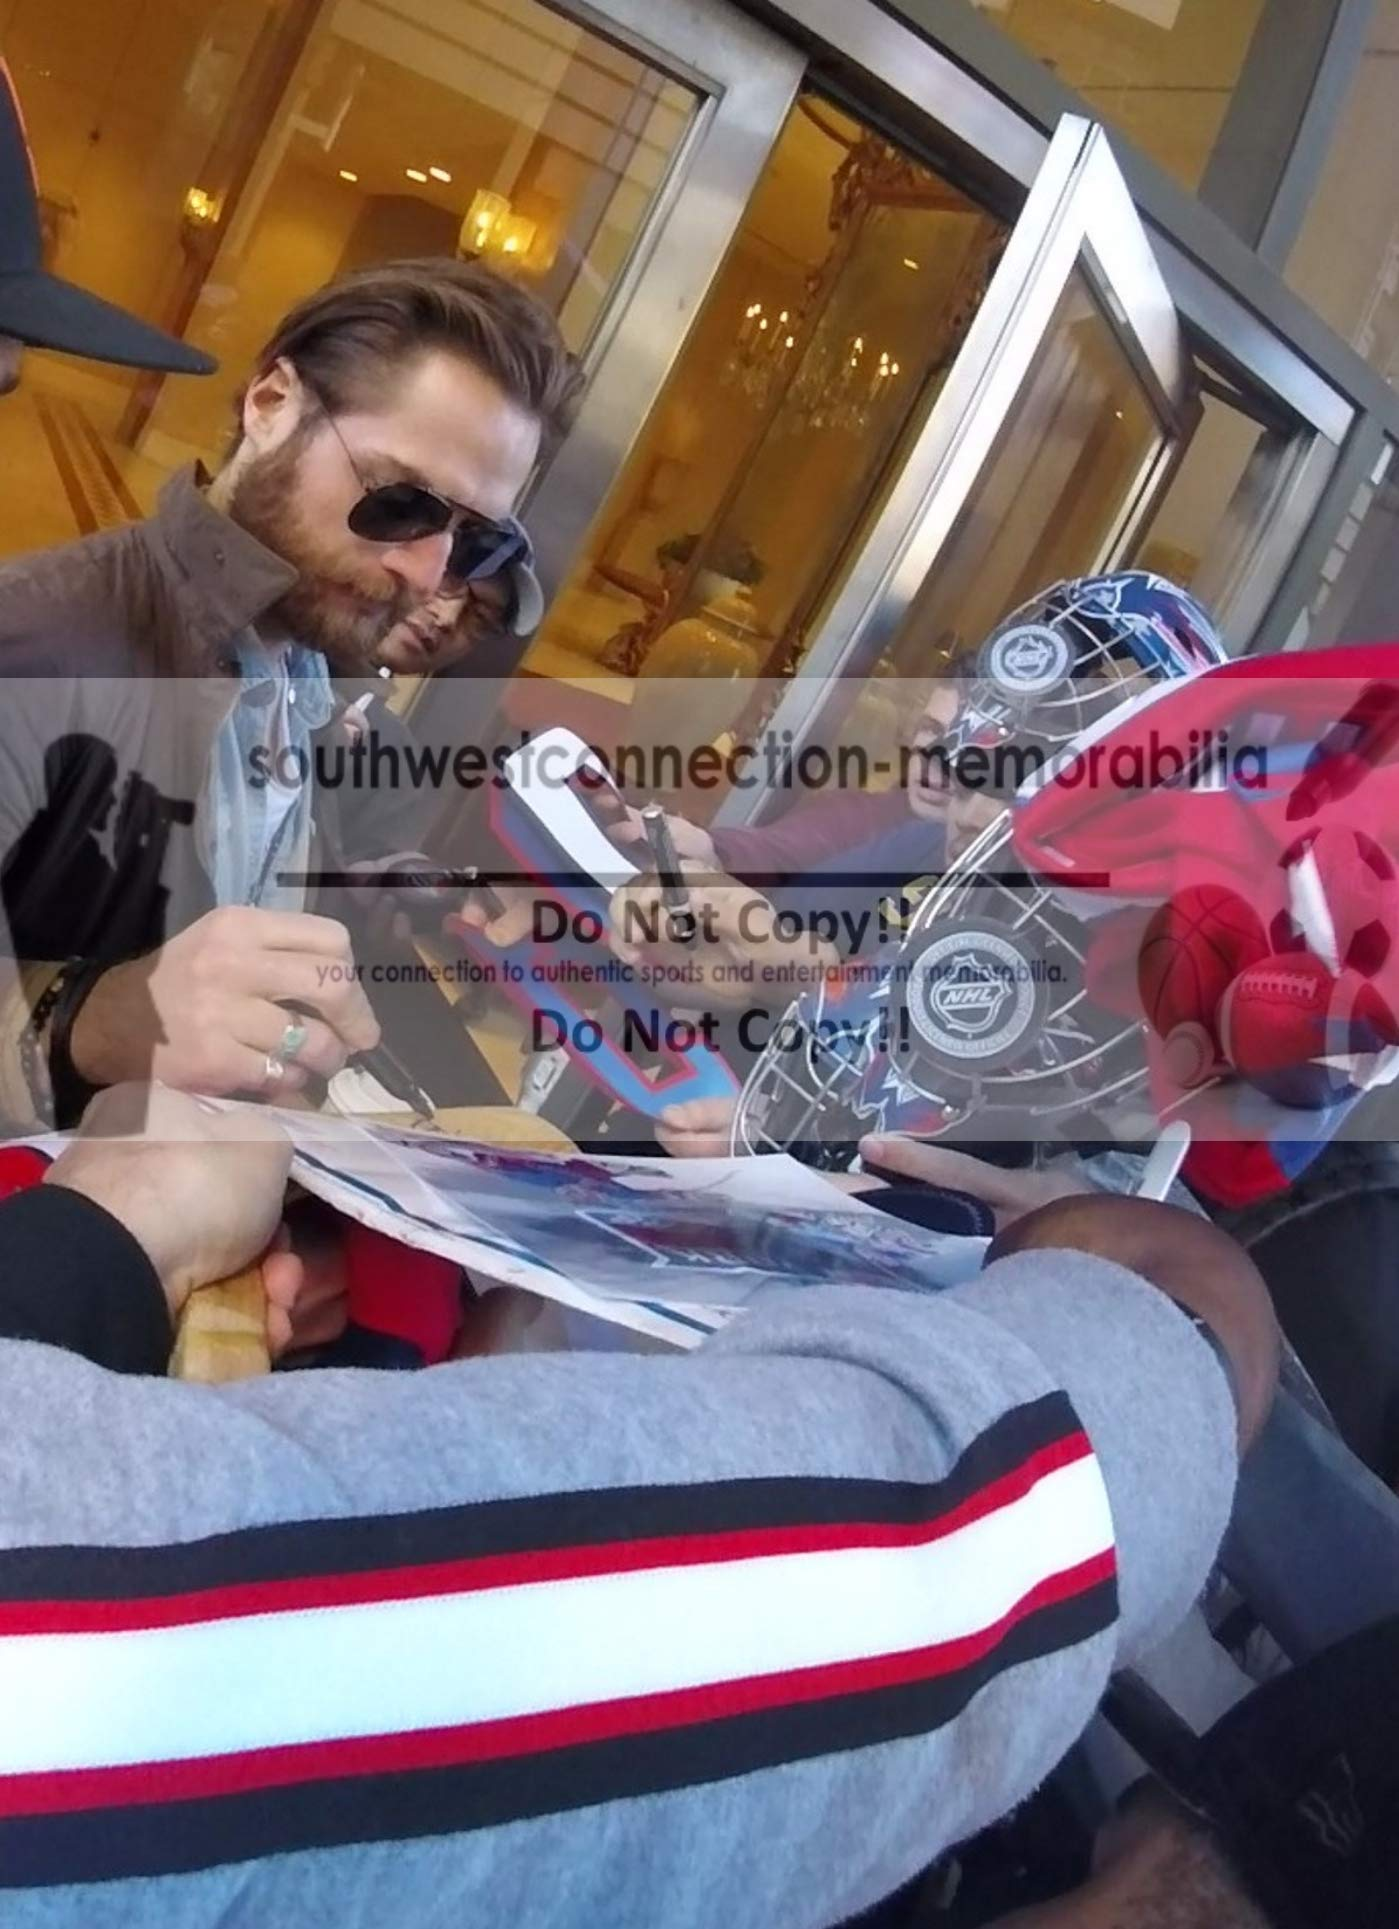 Washington Capitals Braden Holtby Autographed Hand Signed Capitals Logo Ice Hockey Stick Blade with Proof Photo of Signing and COA